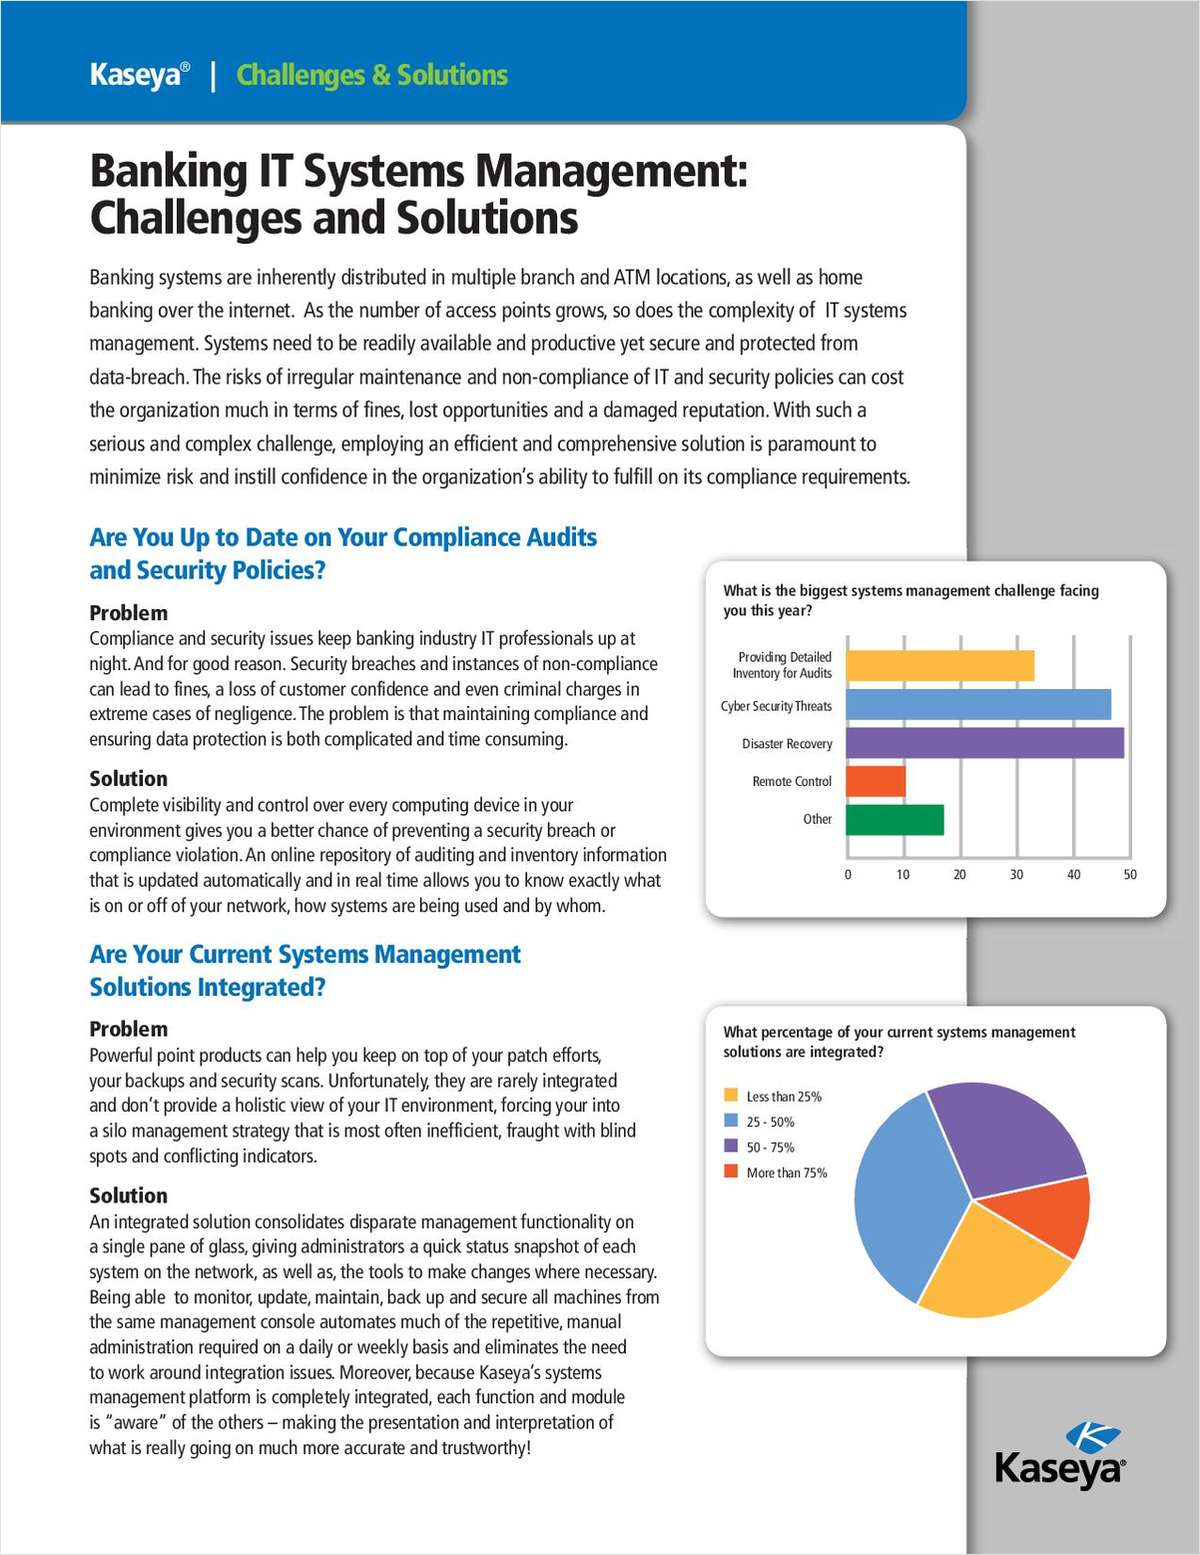 Banking IT Systems Management: Challenges and Solutions